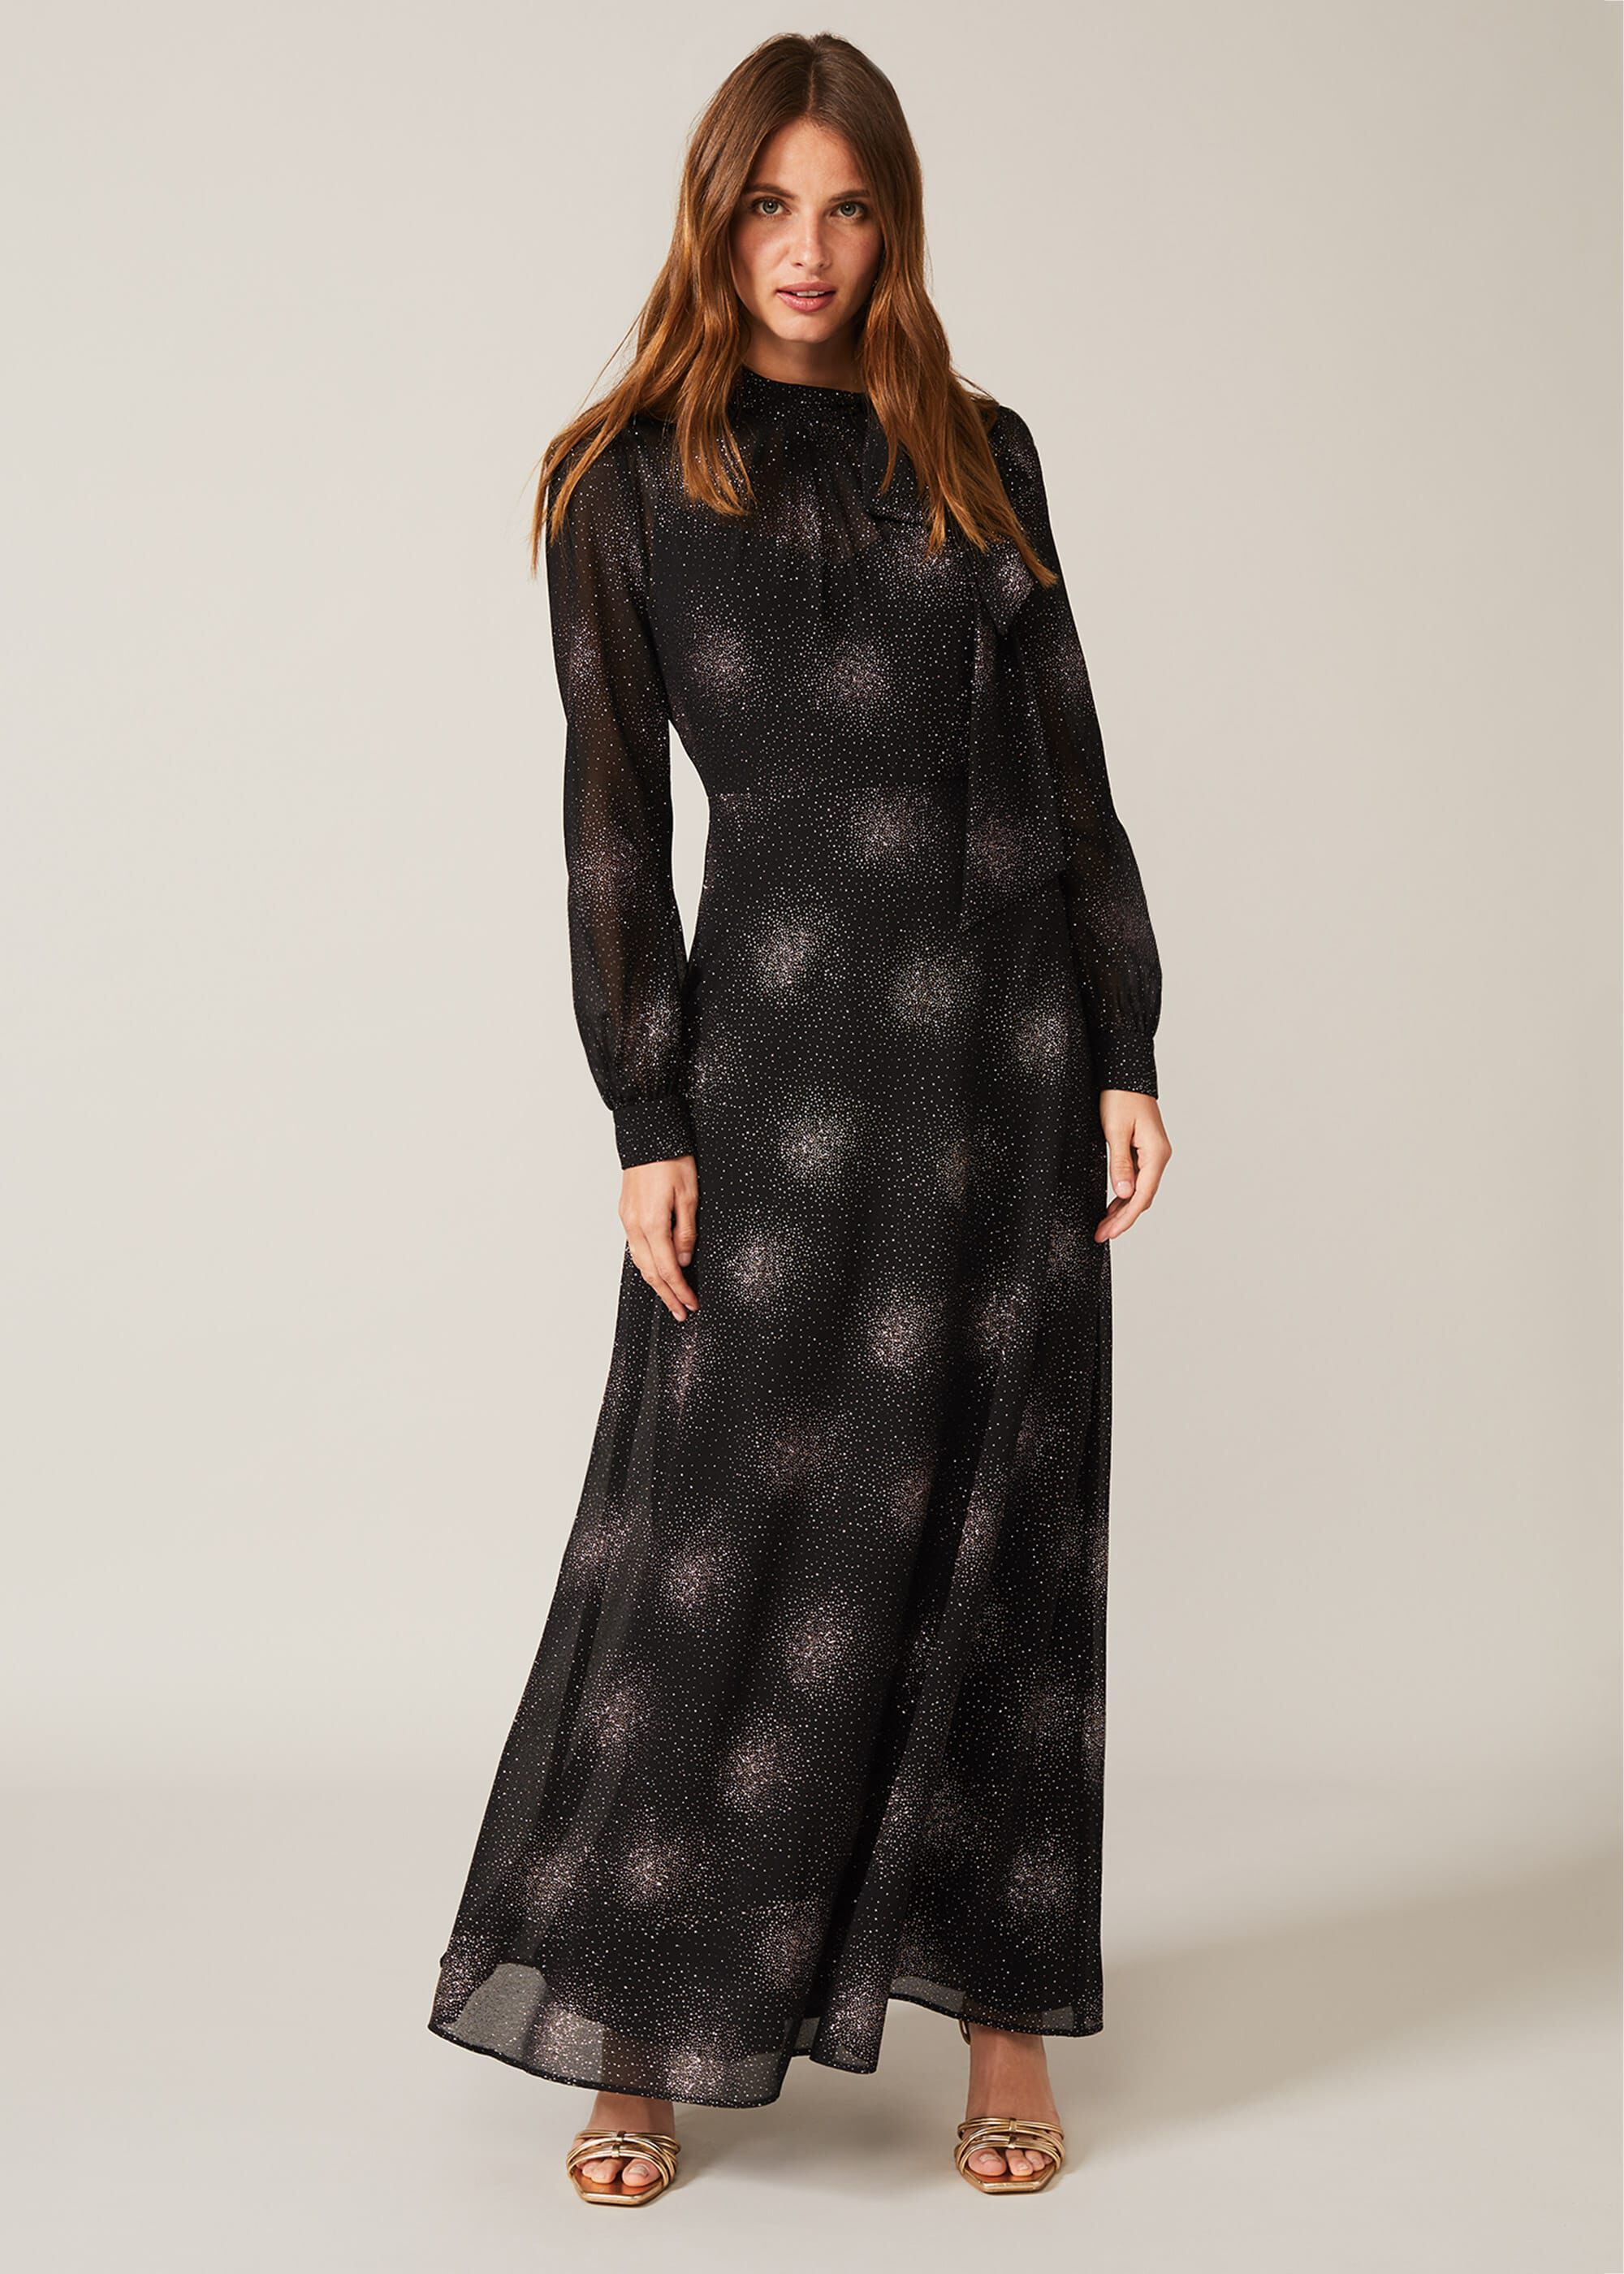 Phase Eight Melina Maxi Dress, Black, Occasion Dress